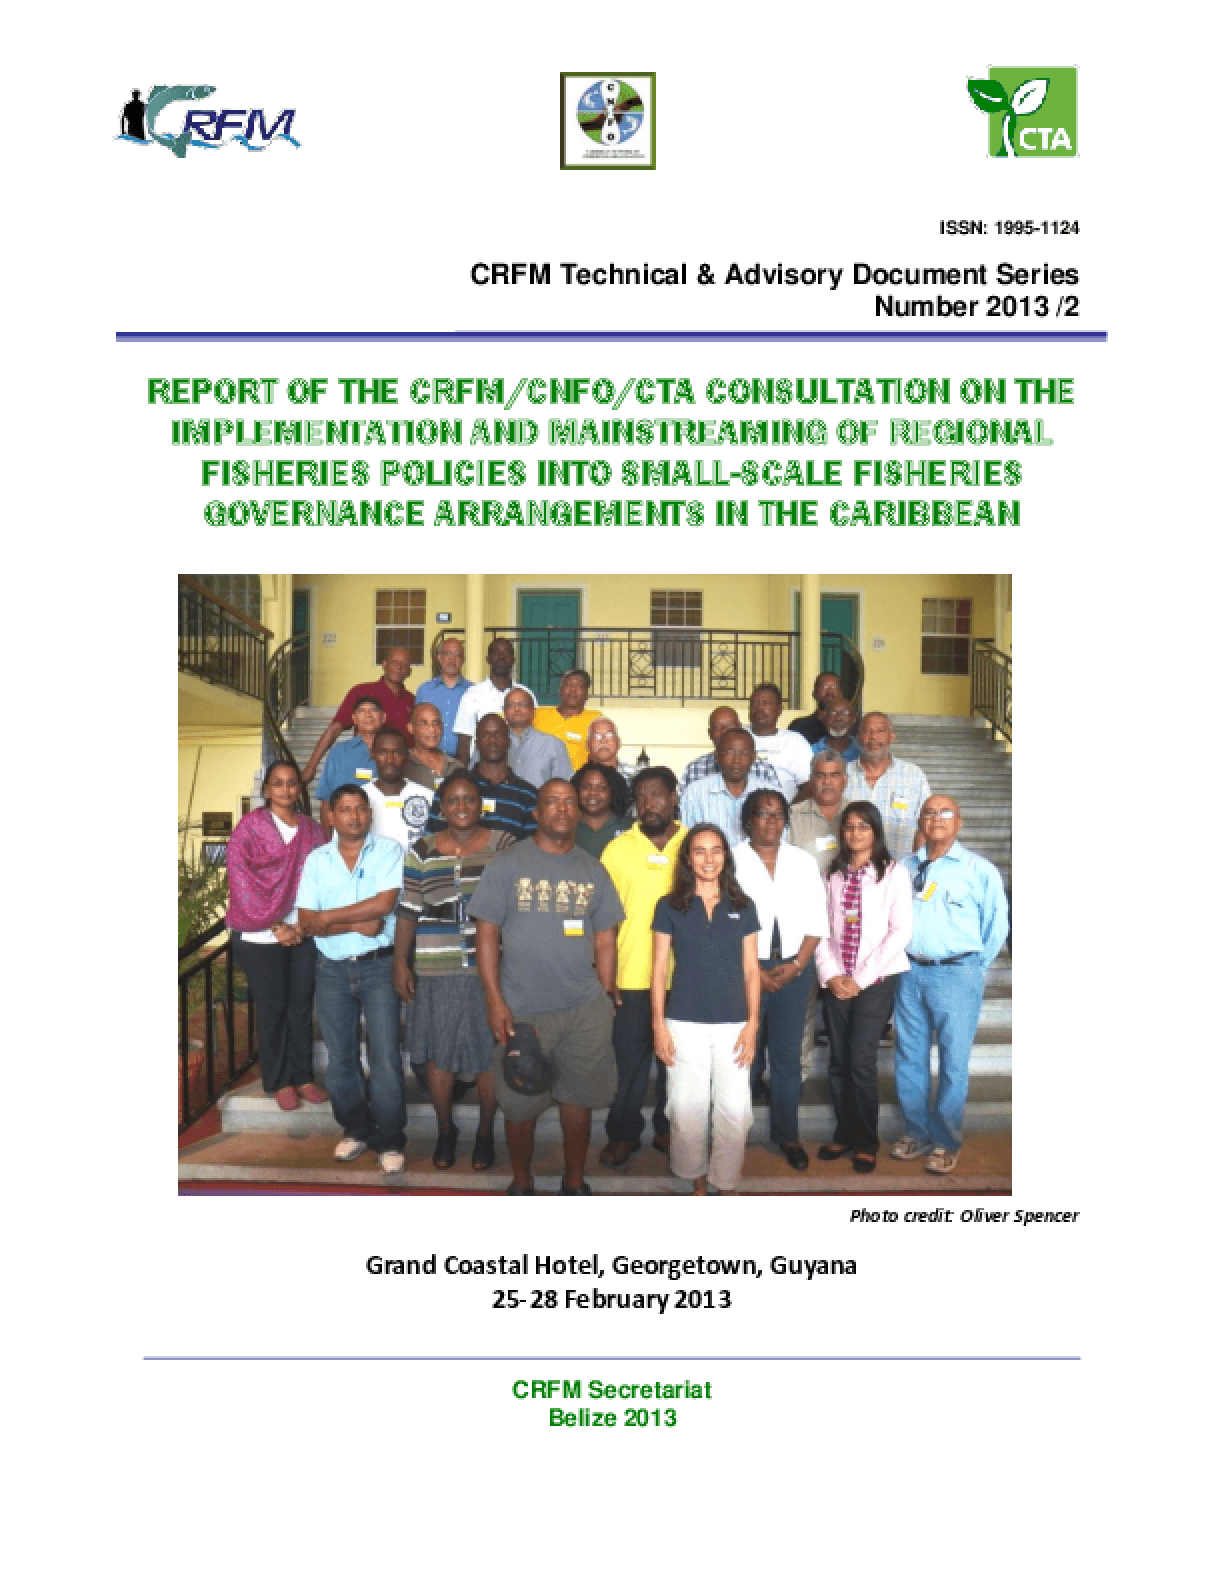 Report of the CRFM/CNFO/CTA Consultation on the Implementation and Mainstreaming of Regional Fisheries Policies into Small-Scale fisheries Governance Arrangements in the Caribbean